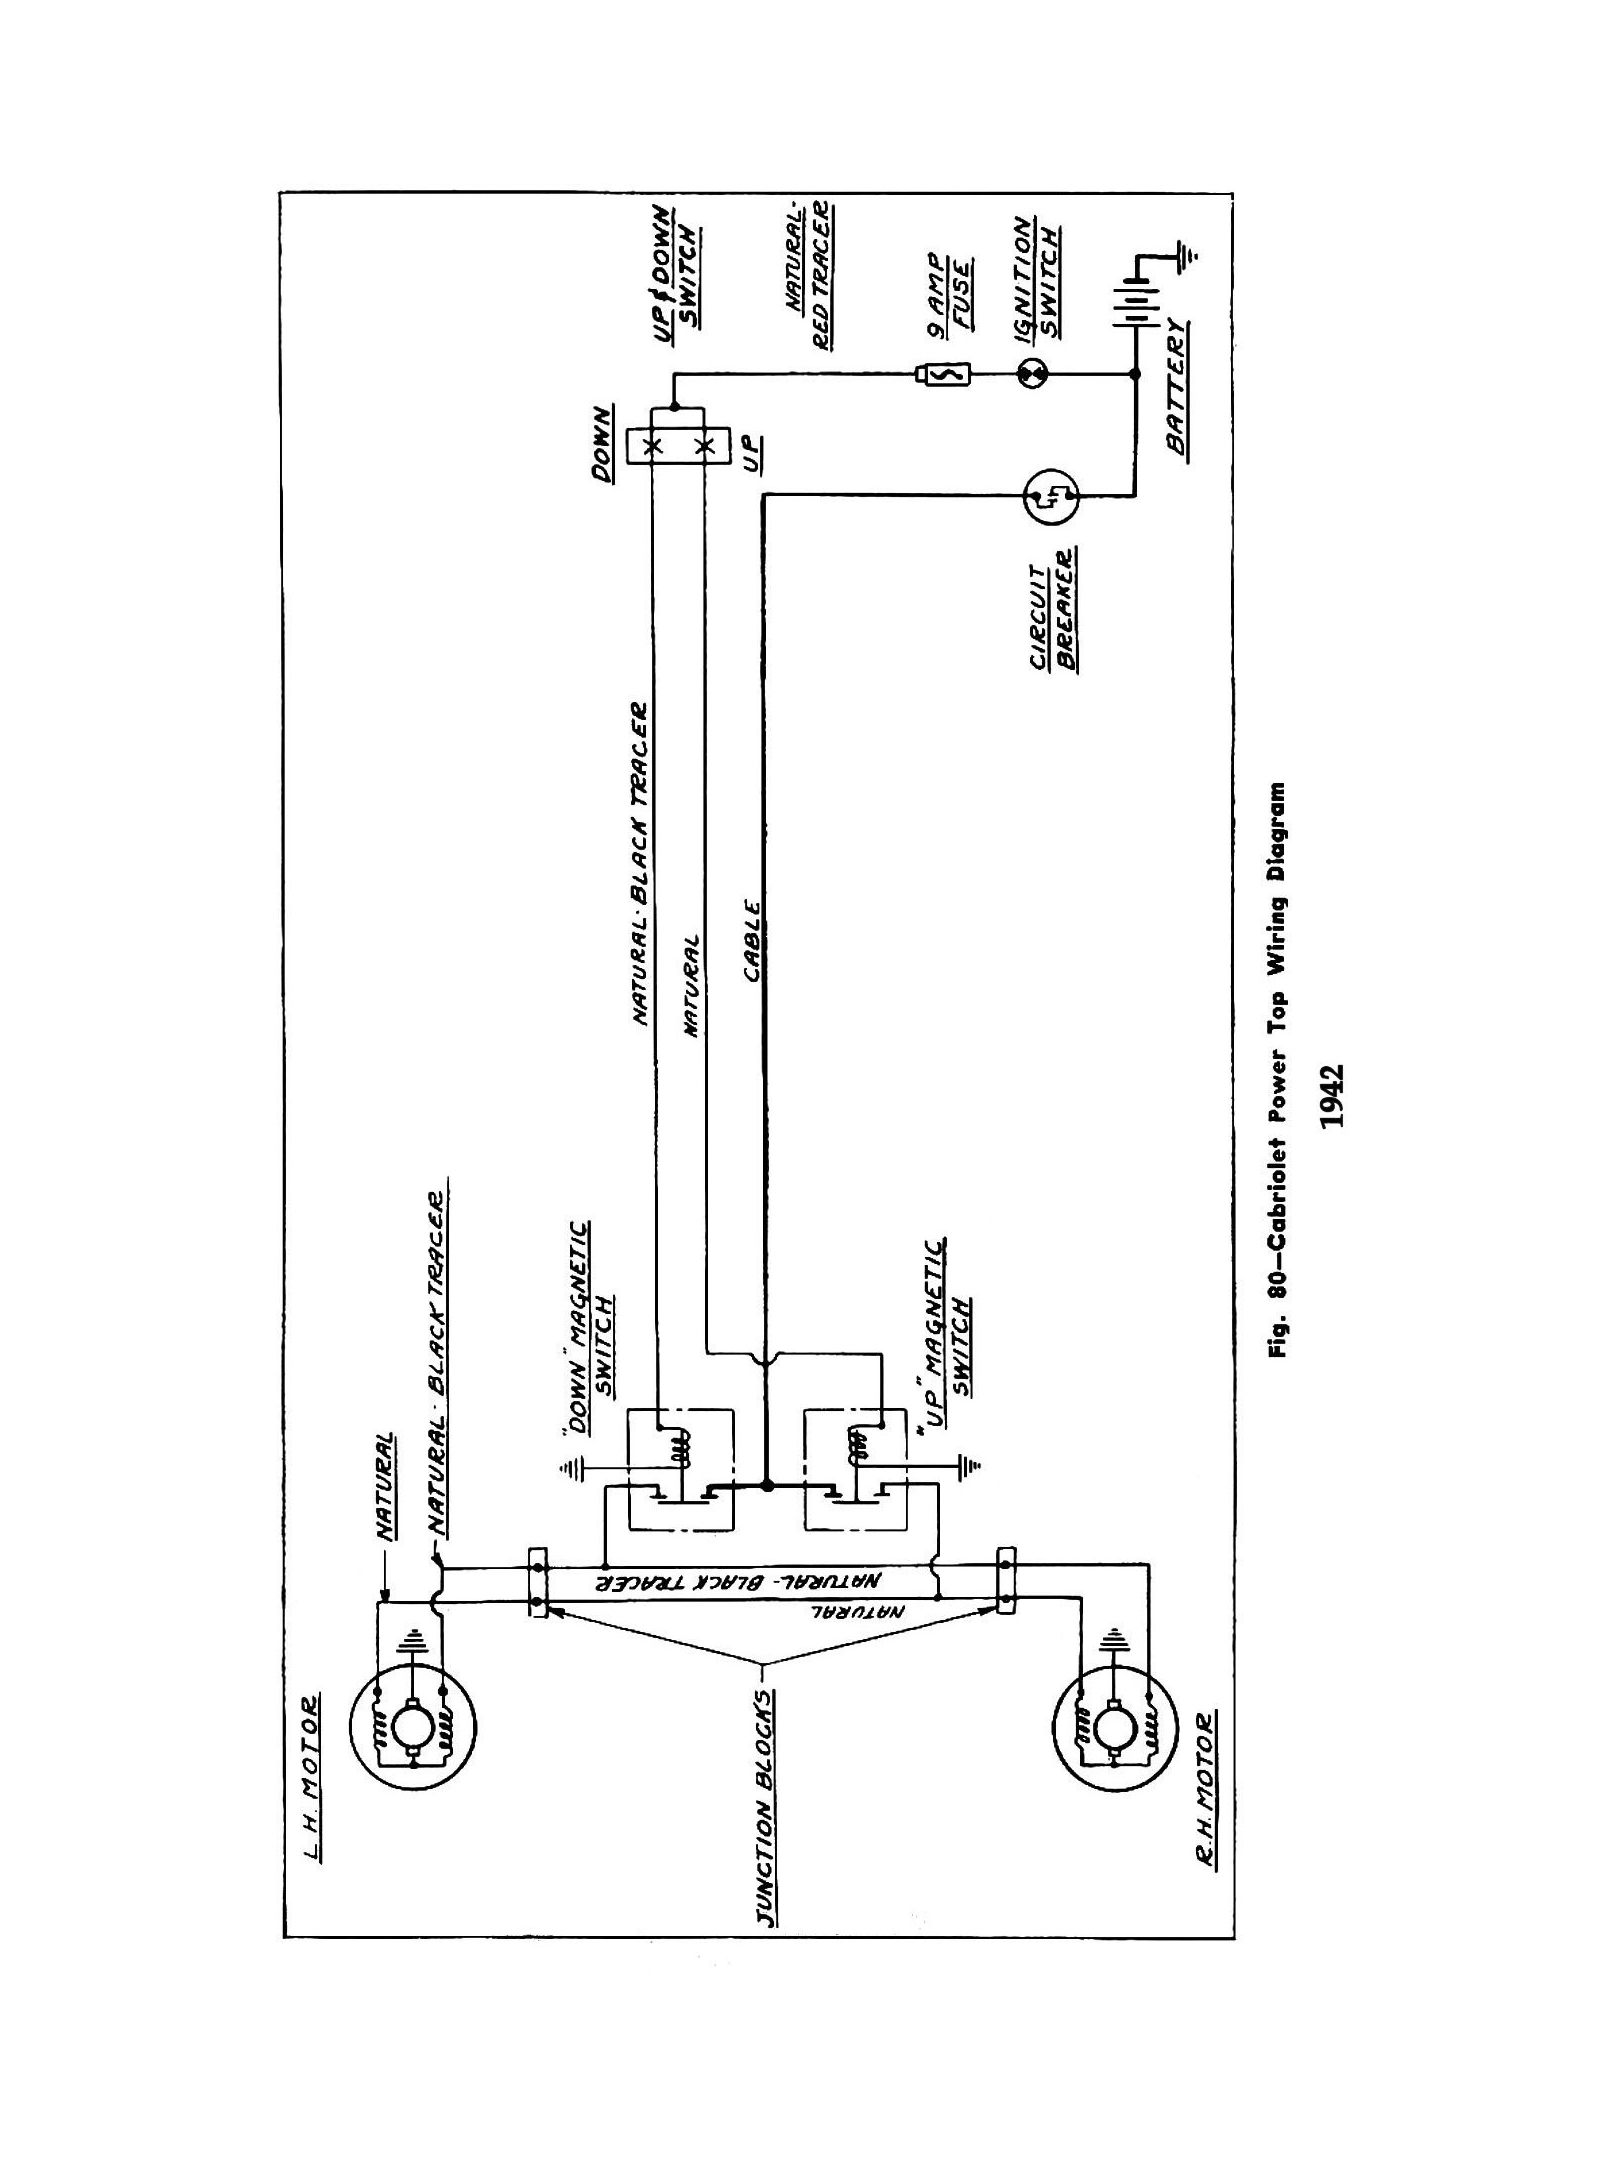 1942 Truck Wiring · 1942 Cabriolet Power Top Wiring ...